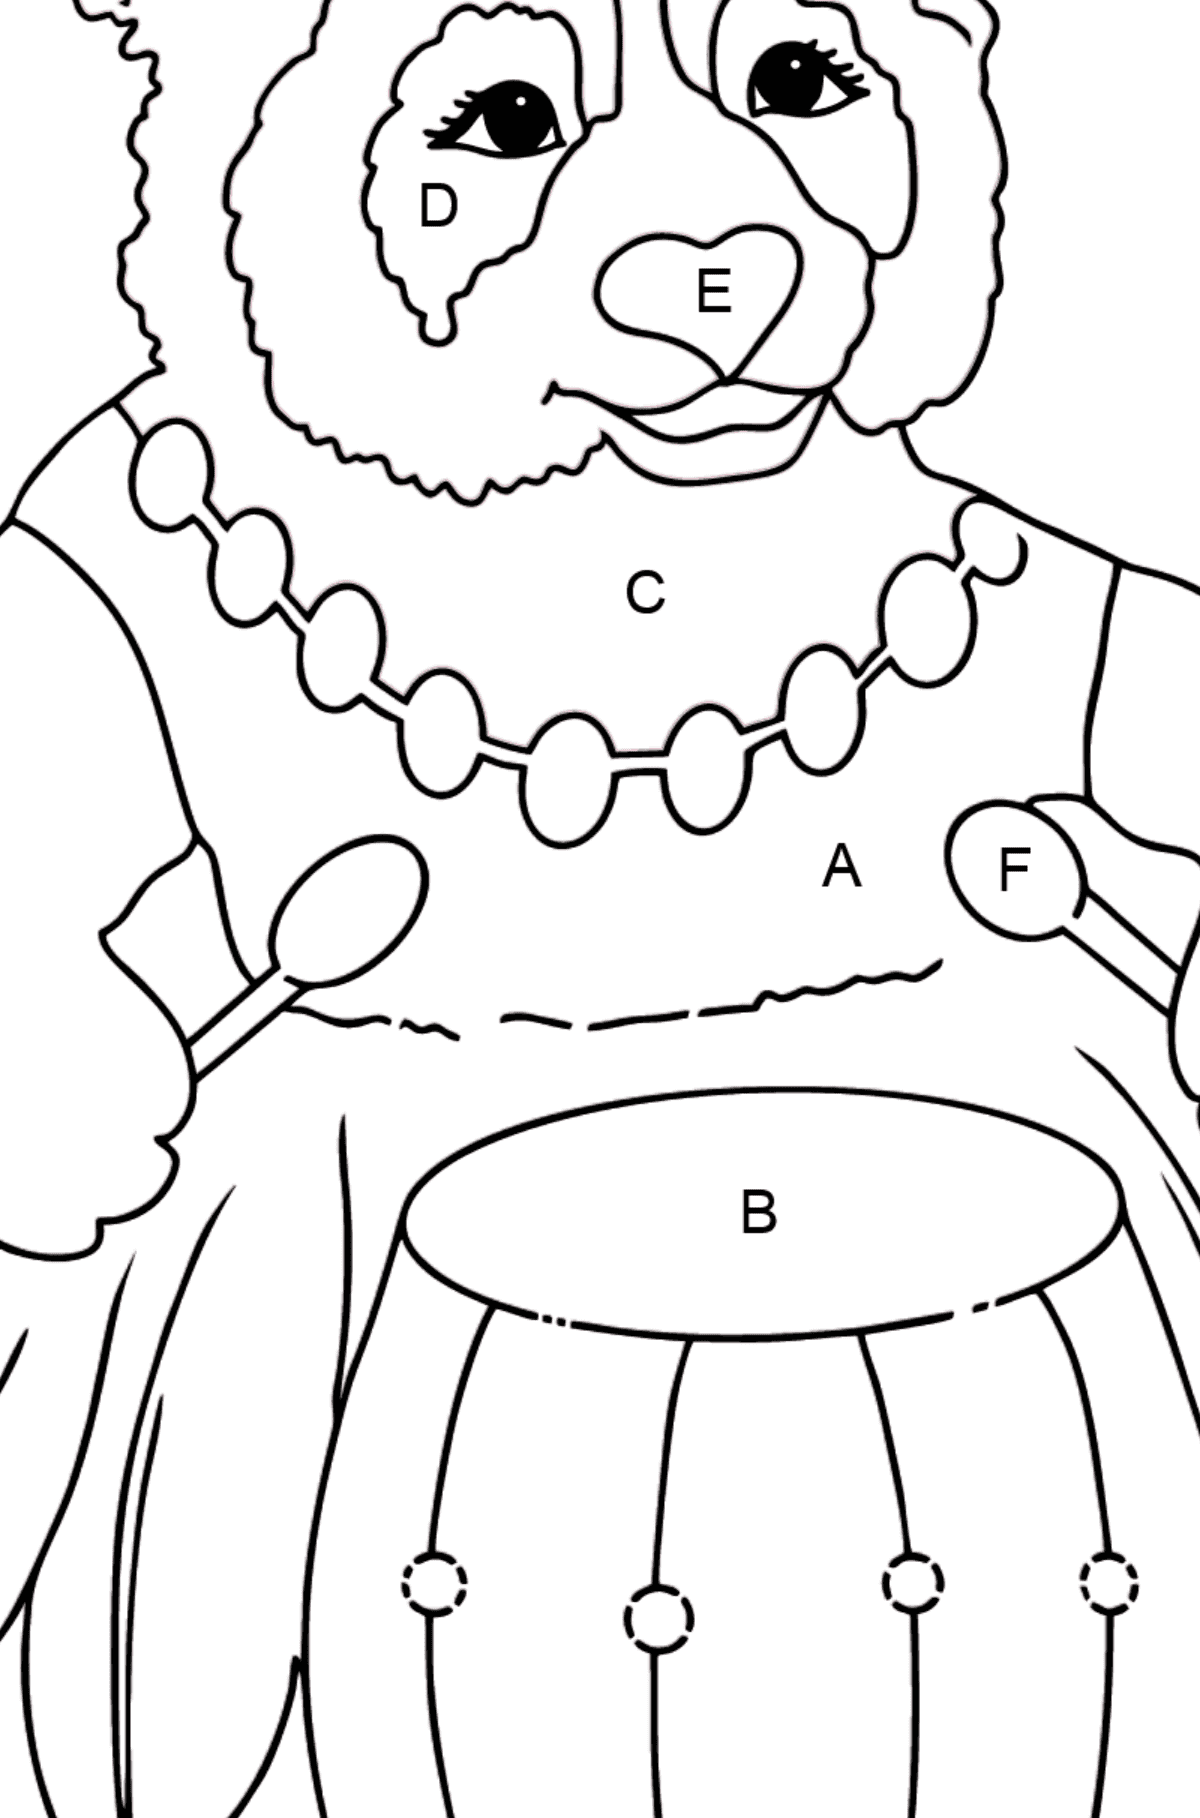 Coloring Page - A Panda is Playing a Drum - Coloring by Letters for Kids